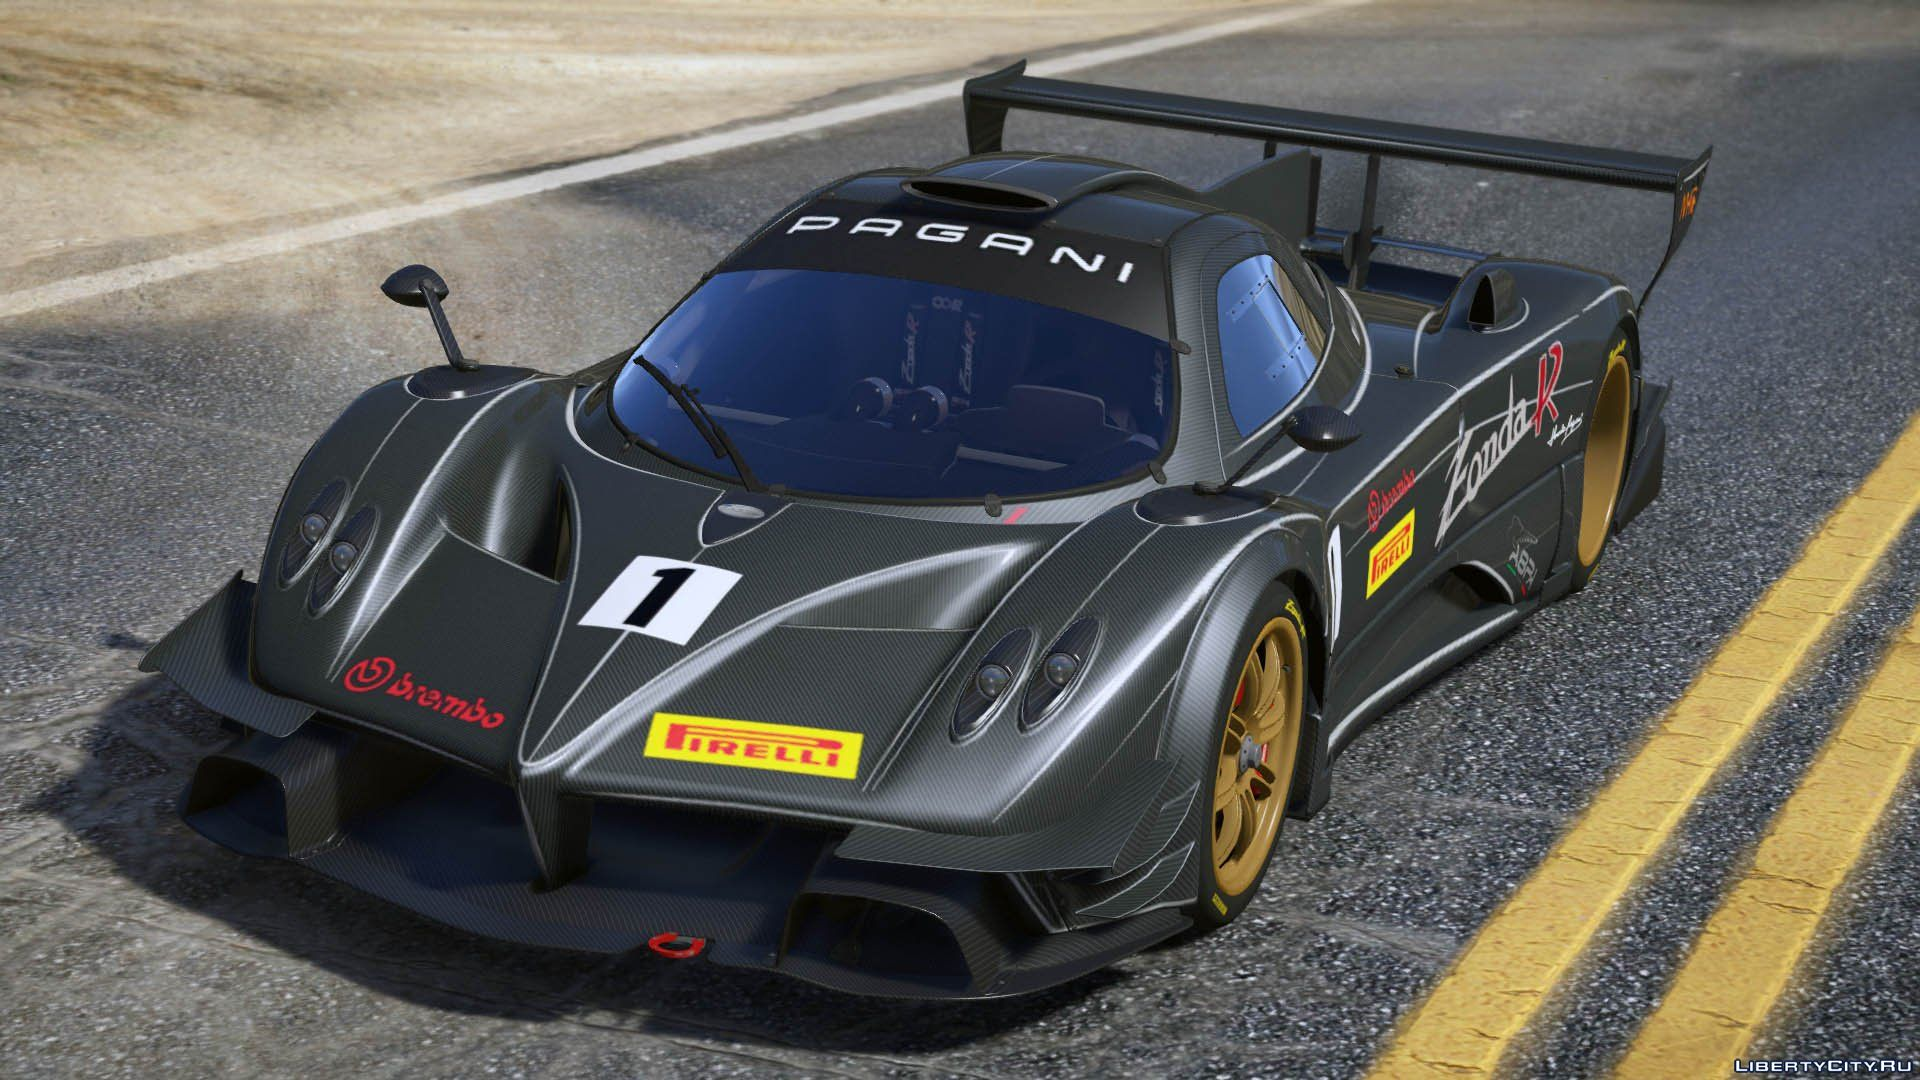 2012 pagani zonda r add on replace liveries template 2 0 for gta 5. Black Bedroom Furniture Sets. Home Design Ideas